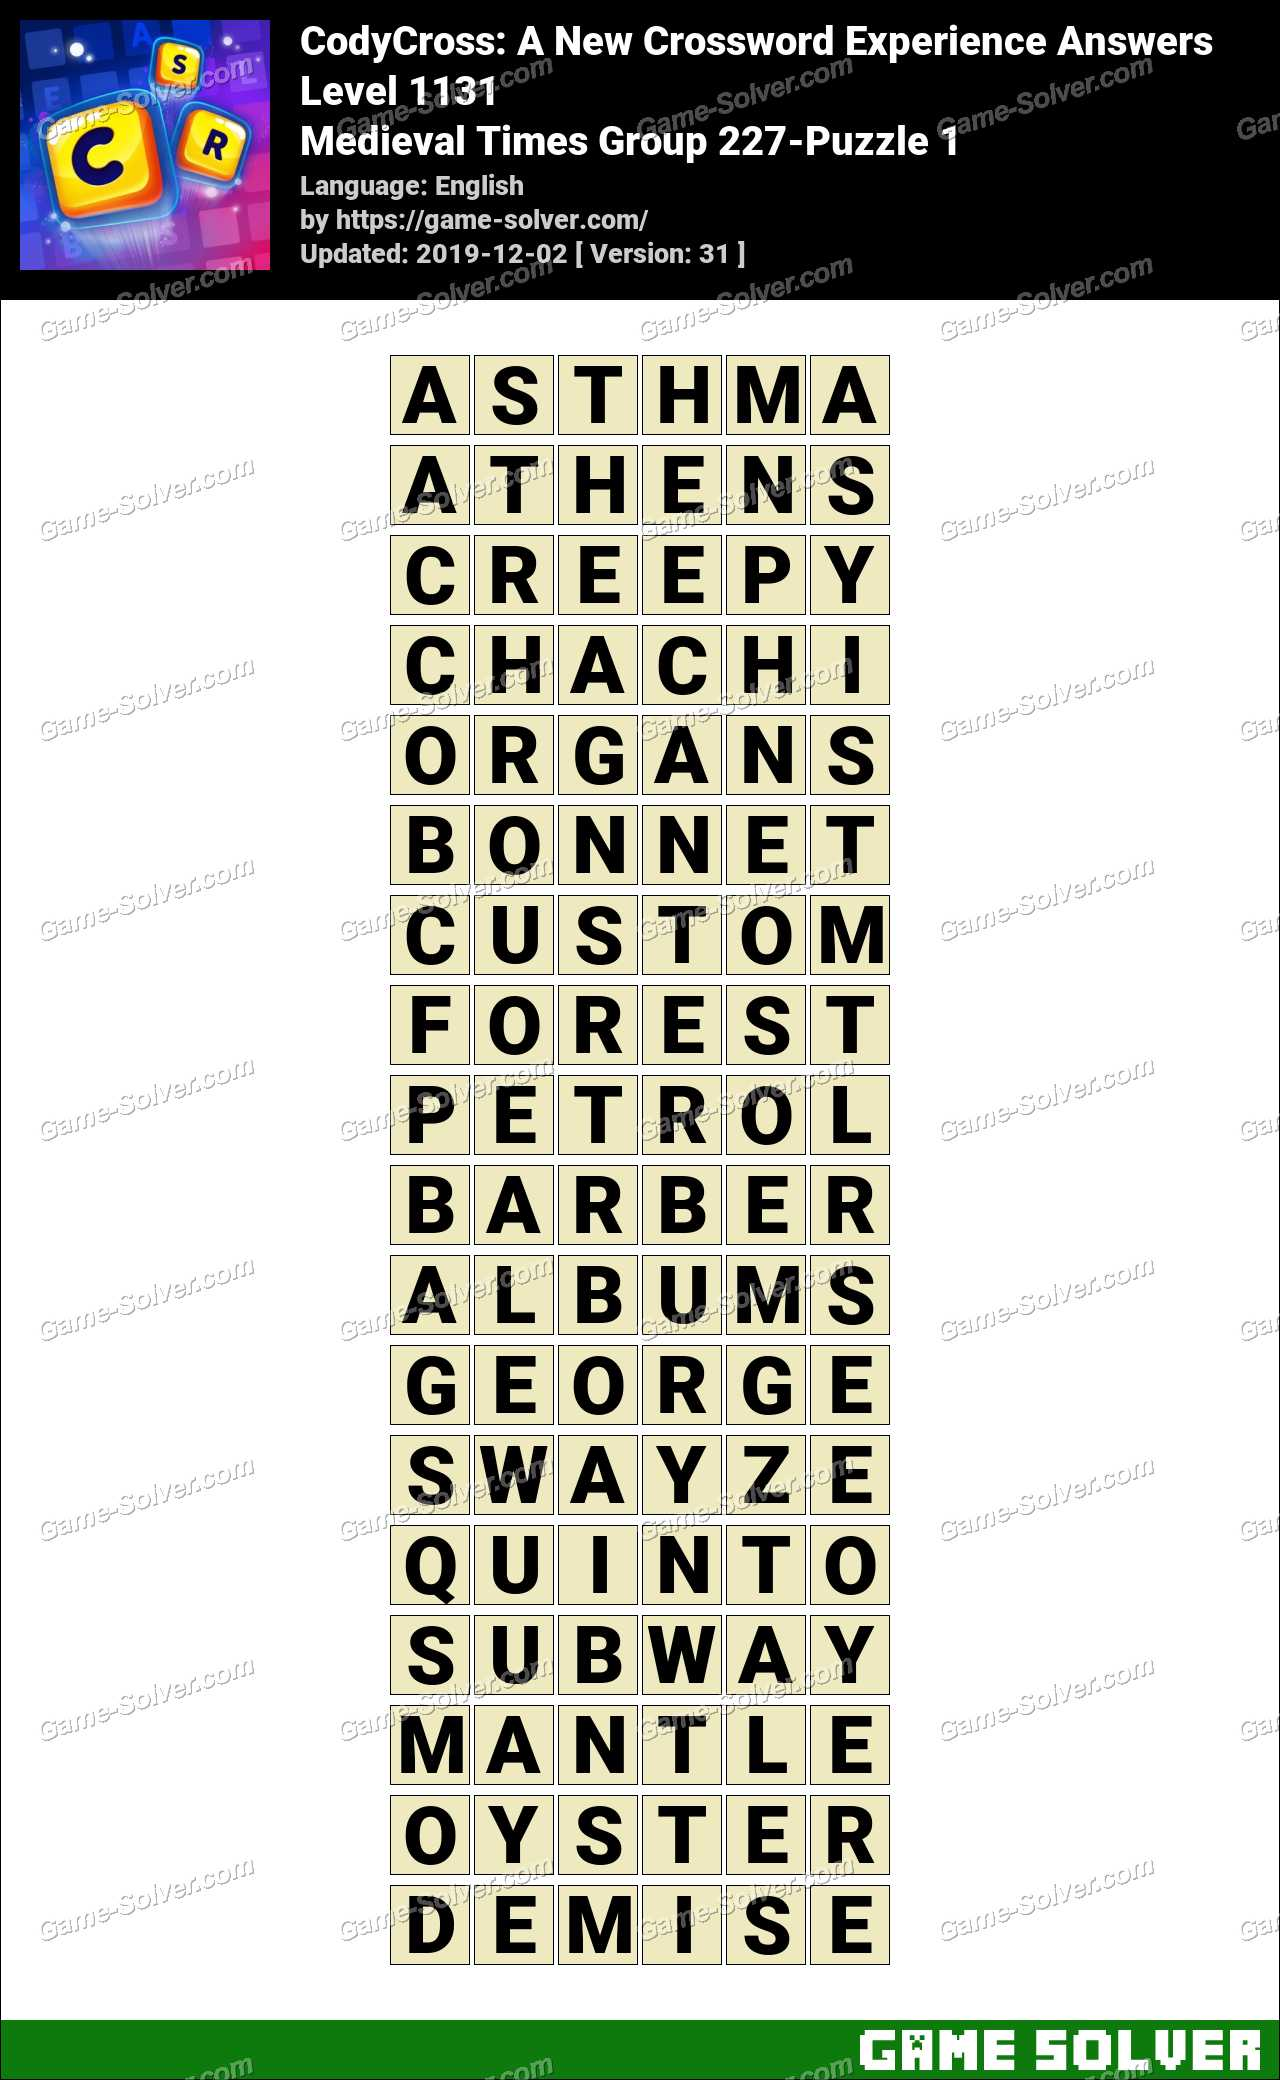 CodyCross Medieval Times Group 227-Puzzle 1 Answers